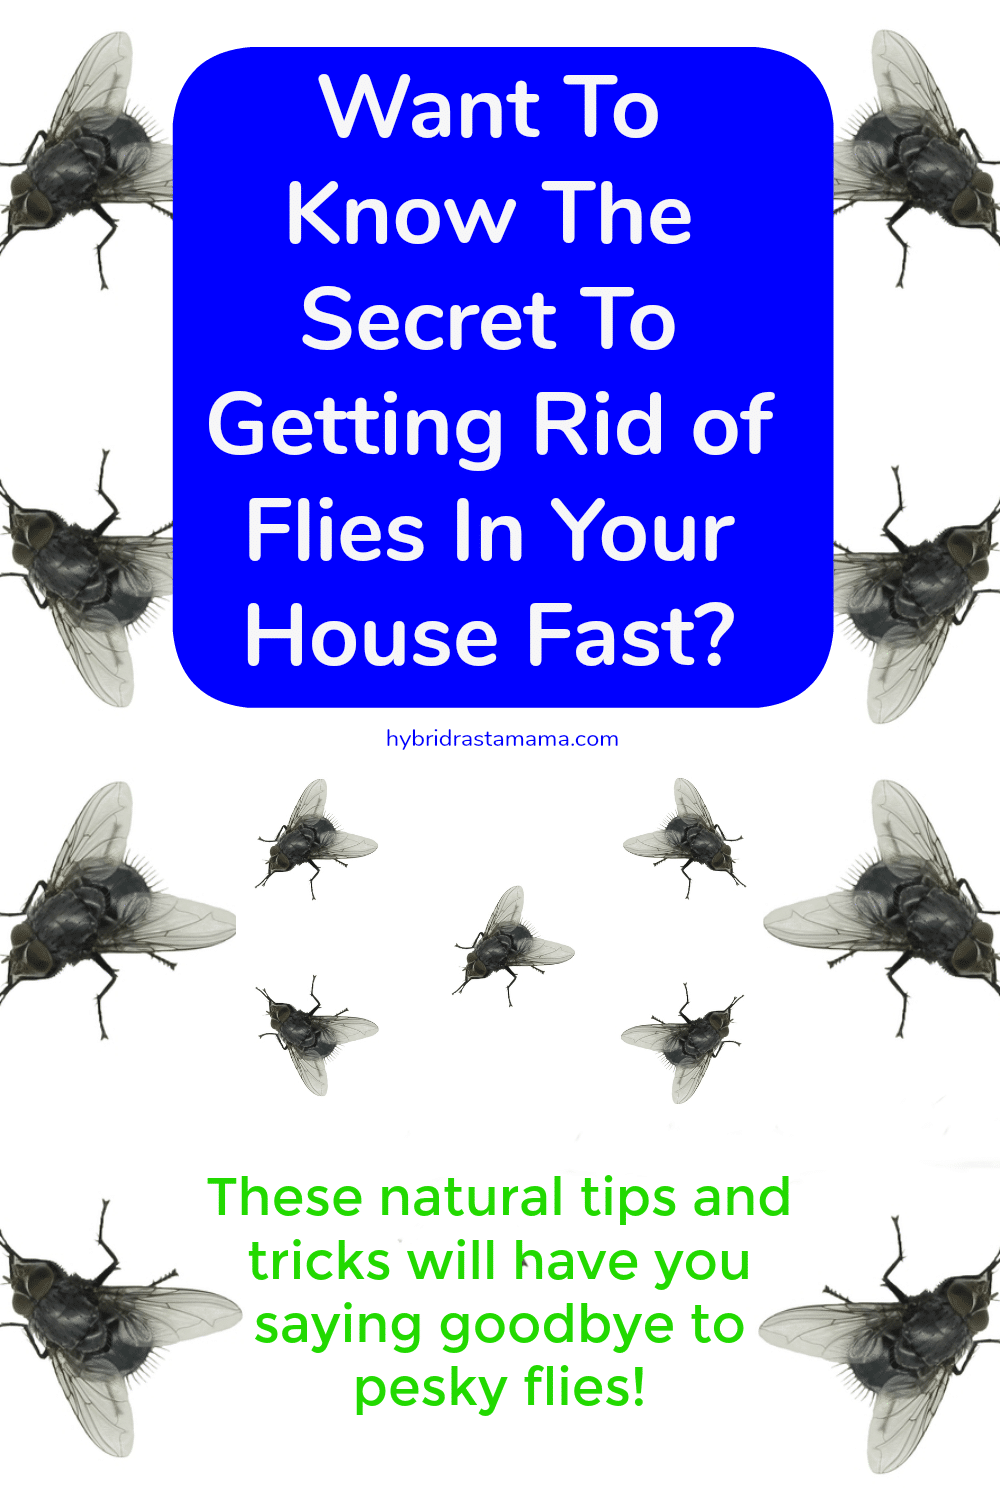 6 Ways To Get Rid Of House Flies Naturally | Hybrid Rasta Mama